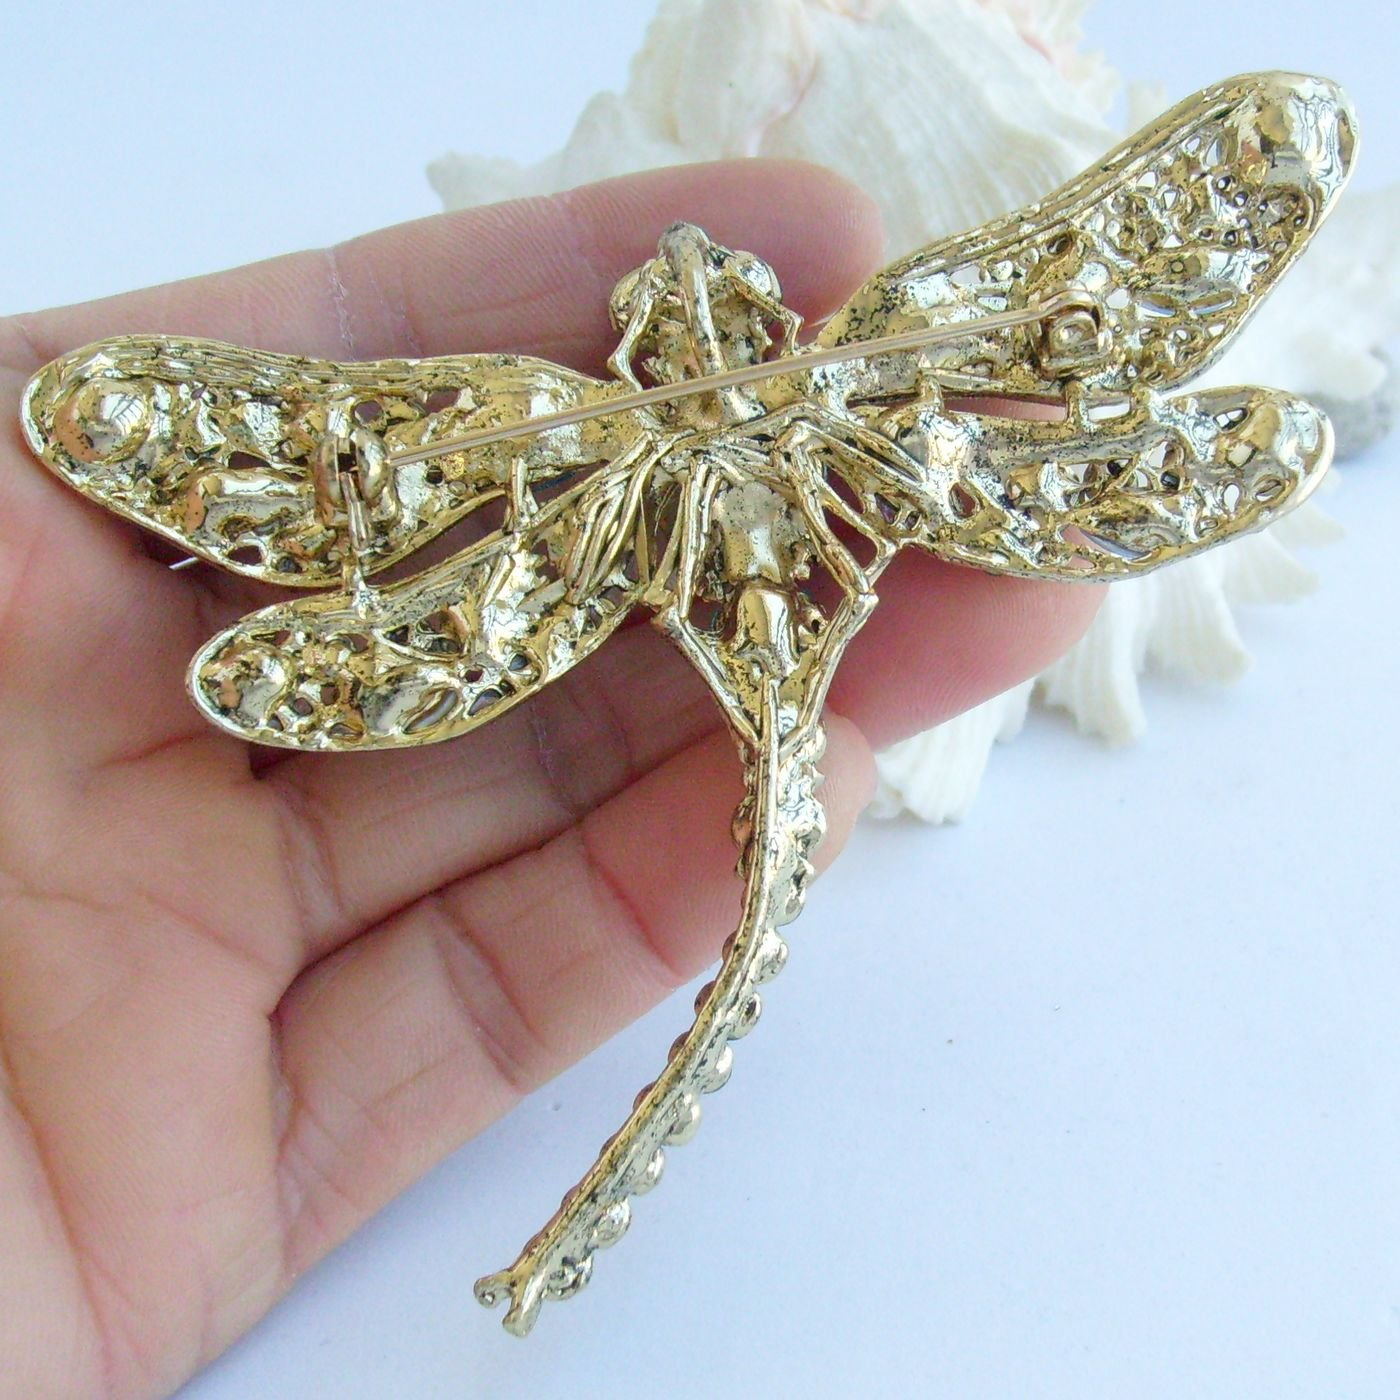 Sindary Elegant 3.74'' Gold-Tone Purple Rhinestone Crystal Dragonfly Brooch Pin Pendant BZ5684 by Animal Brooch-Sindary Jewelry (Image #4)